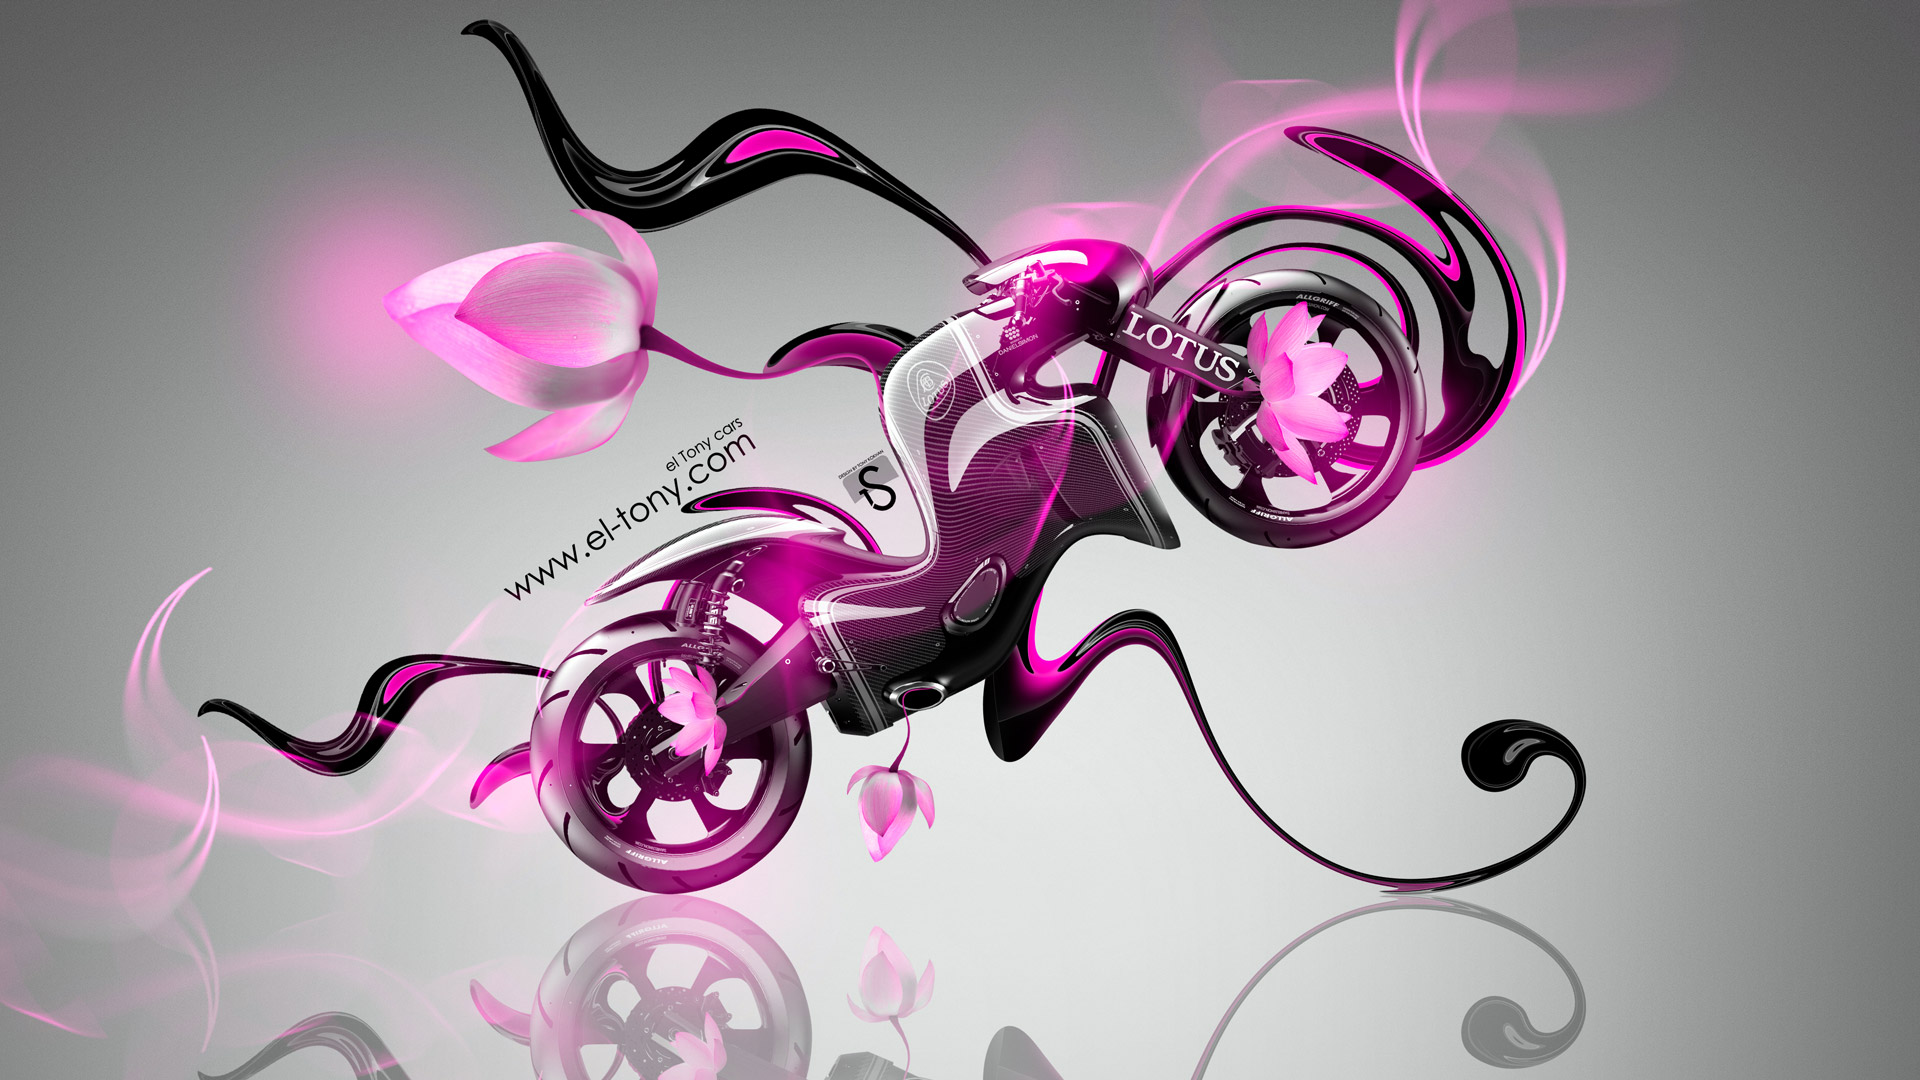 Nice Lotus C 01 Fantasy Flowers Moto Bike 2014